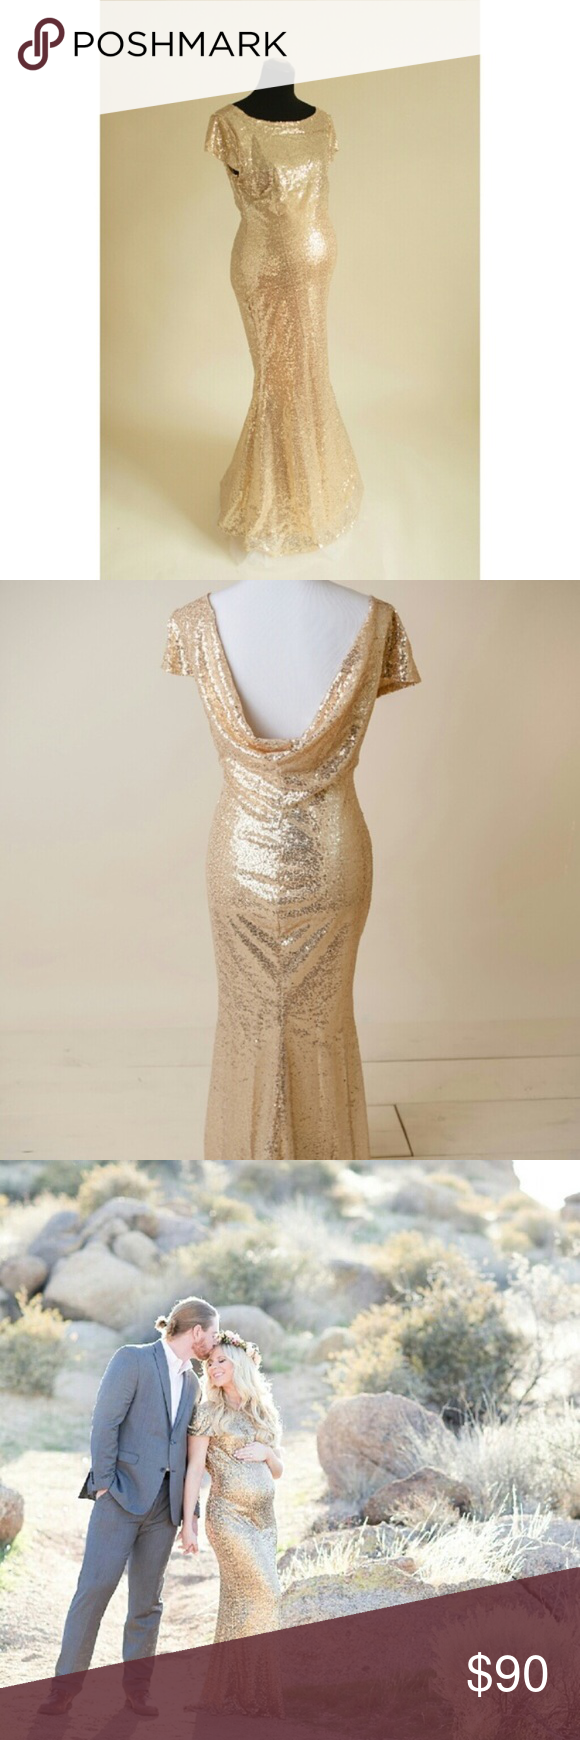 Gold maternity gown embarazo